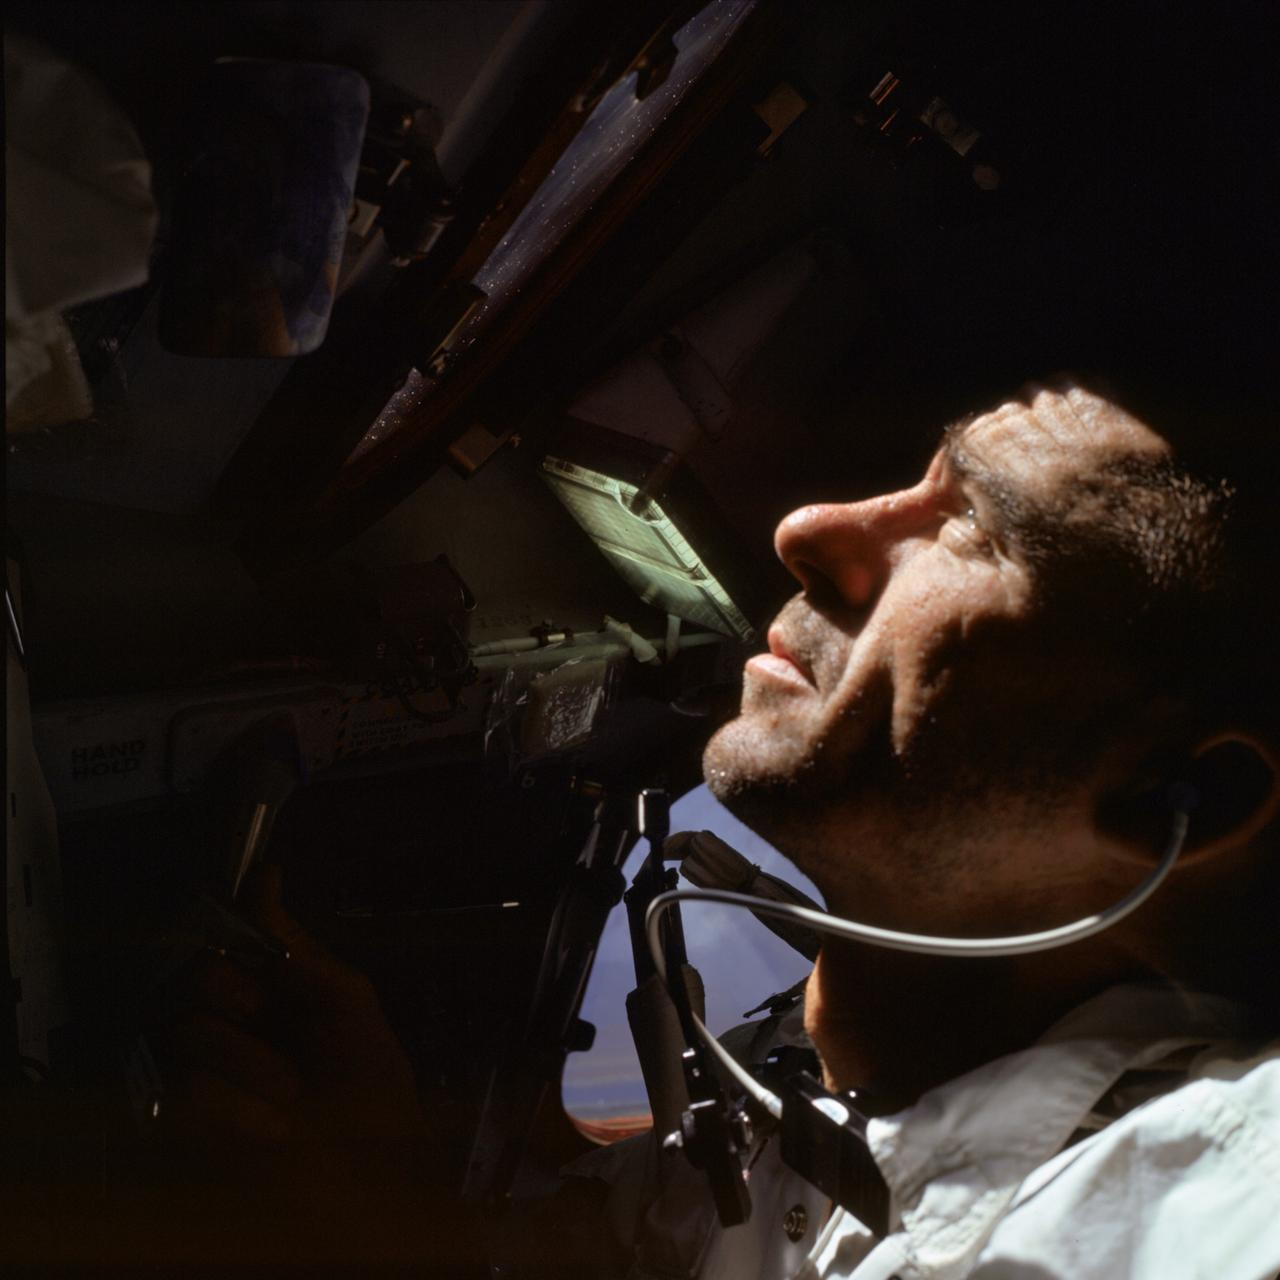 Apollo 7 lunar module pilot Water Cunningham during the mission.